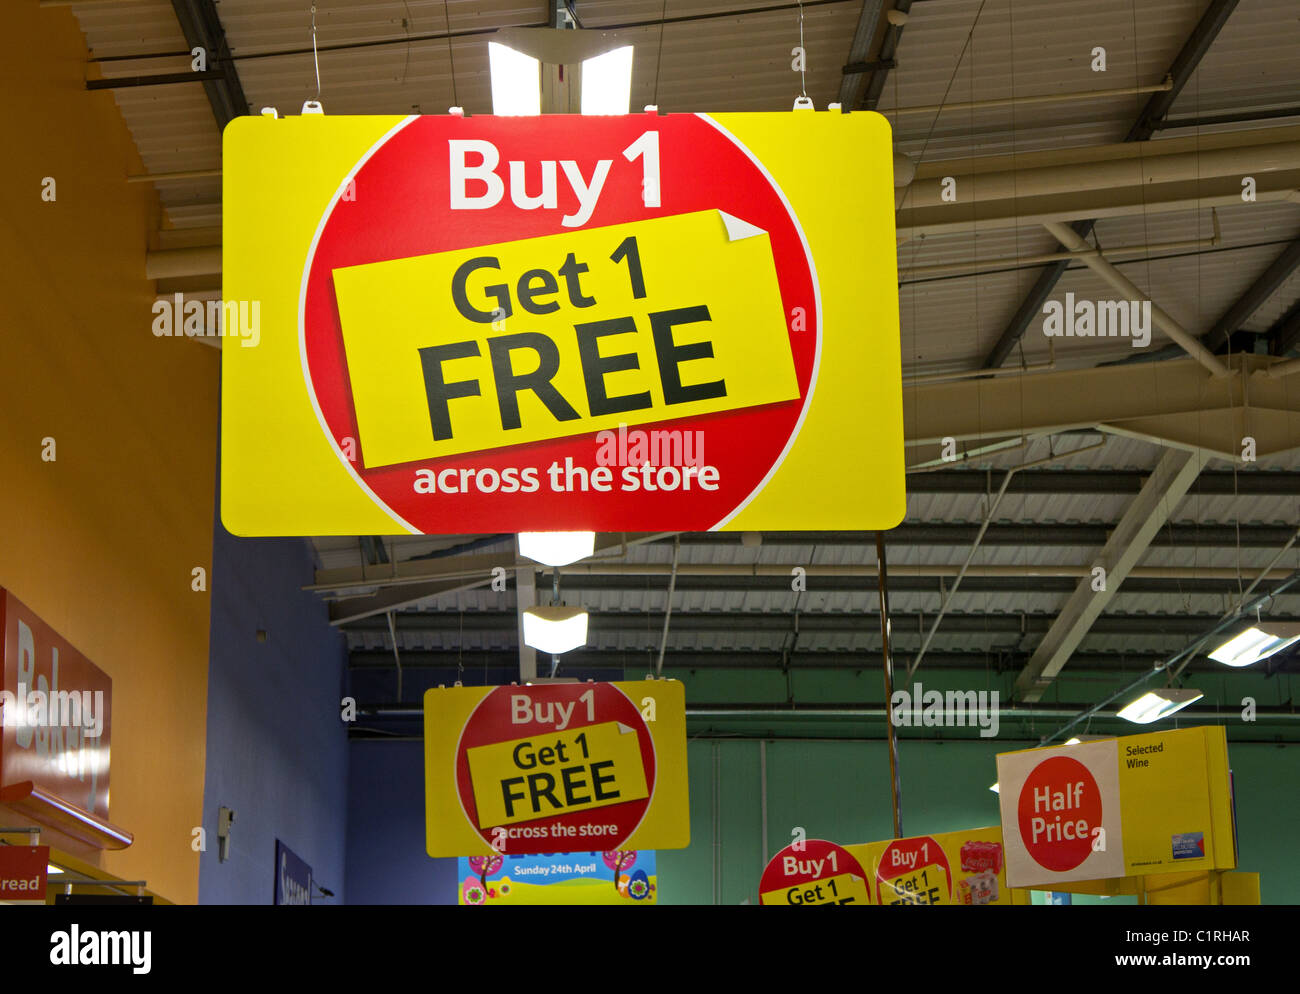 A buy 1 get 1 free sign in a Tesco supermarket, UK - Stock Image